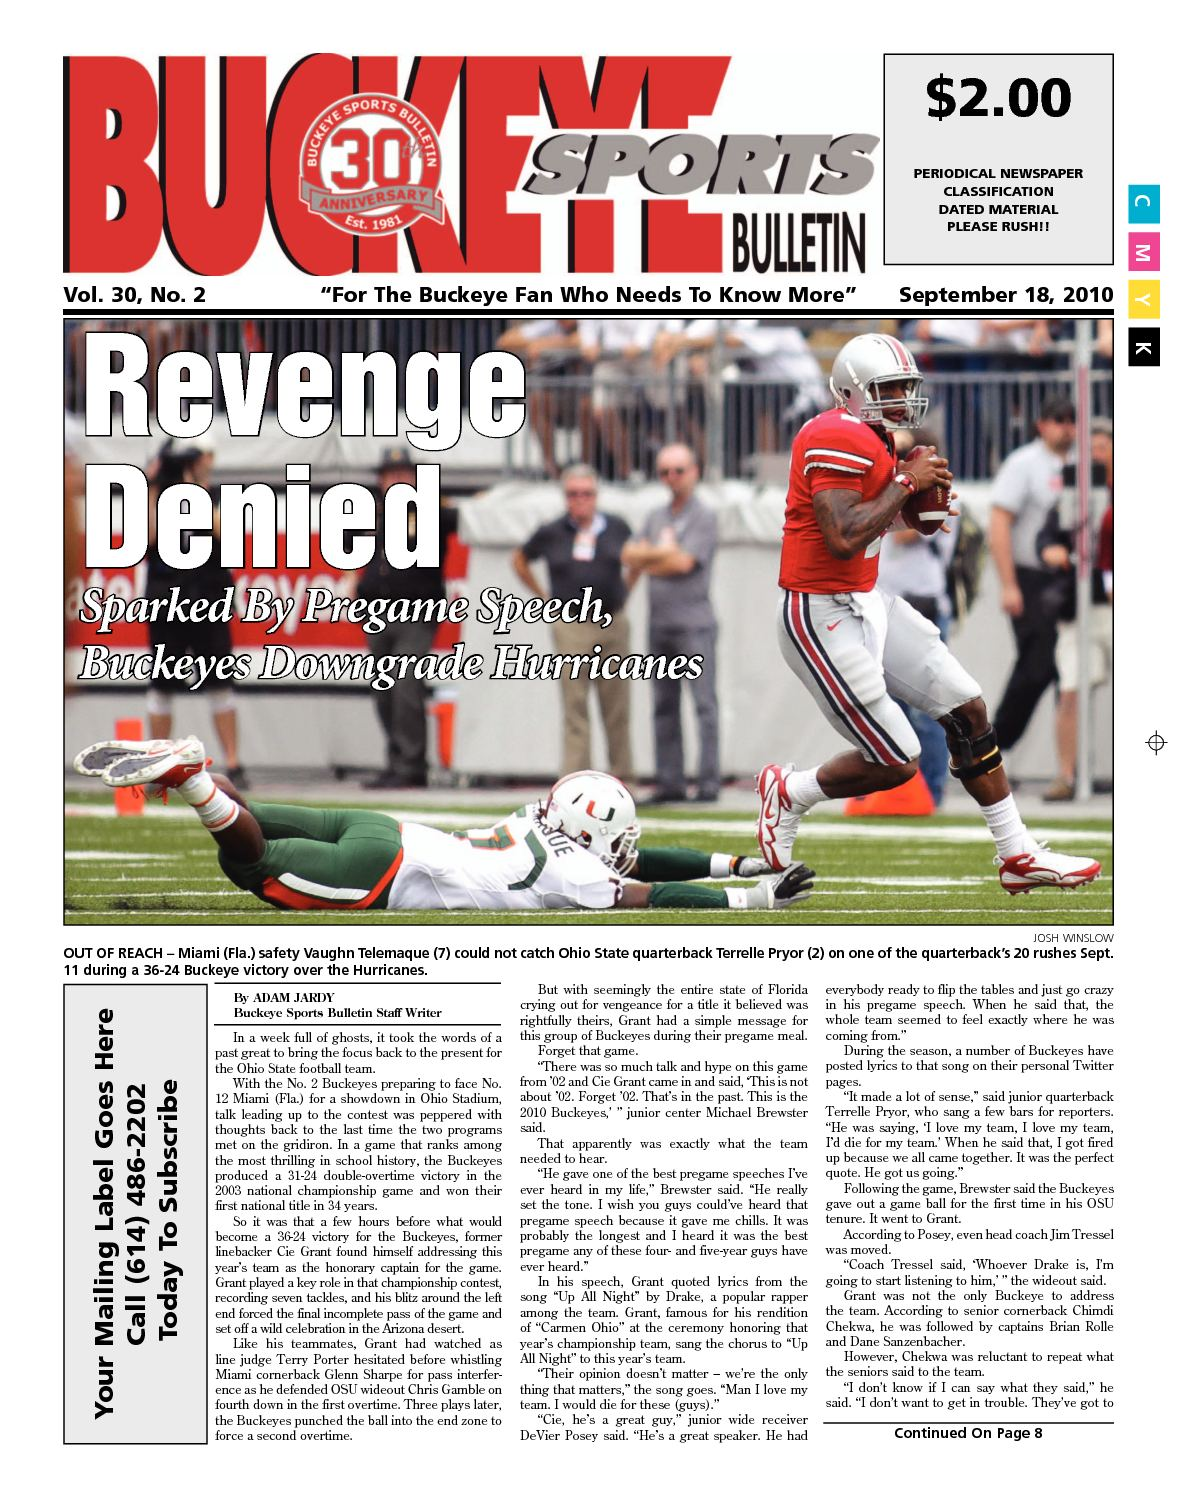 sale online best prices exclusive deals Calaméo - Buckeye Sports Bulletin September 18, 2010 Print Edition